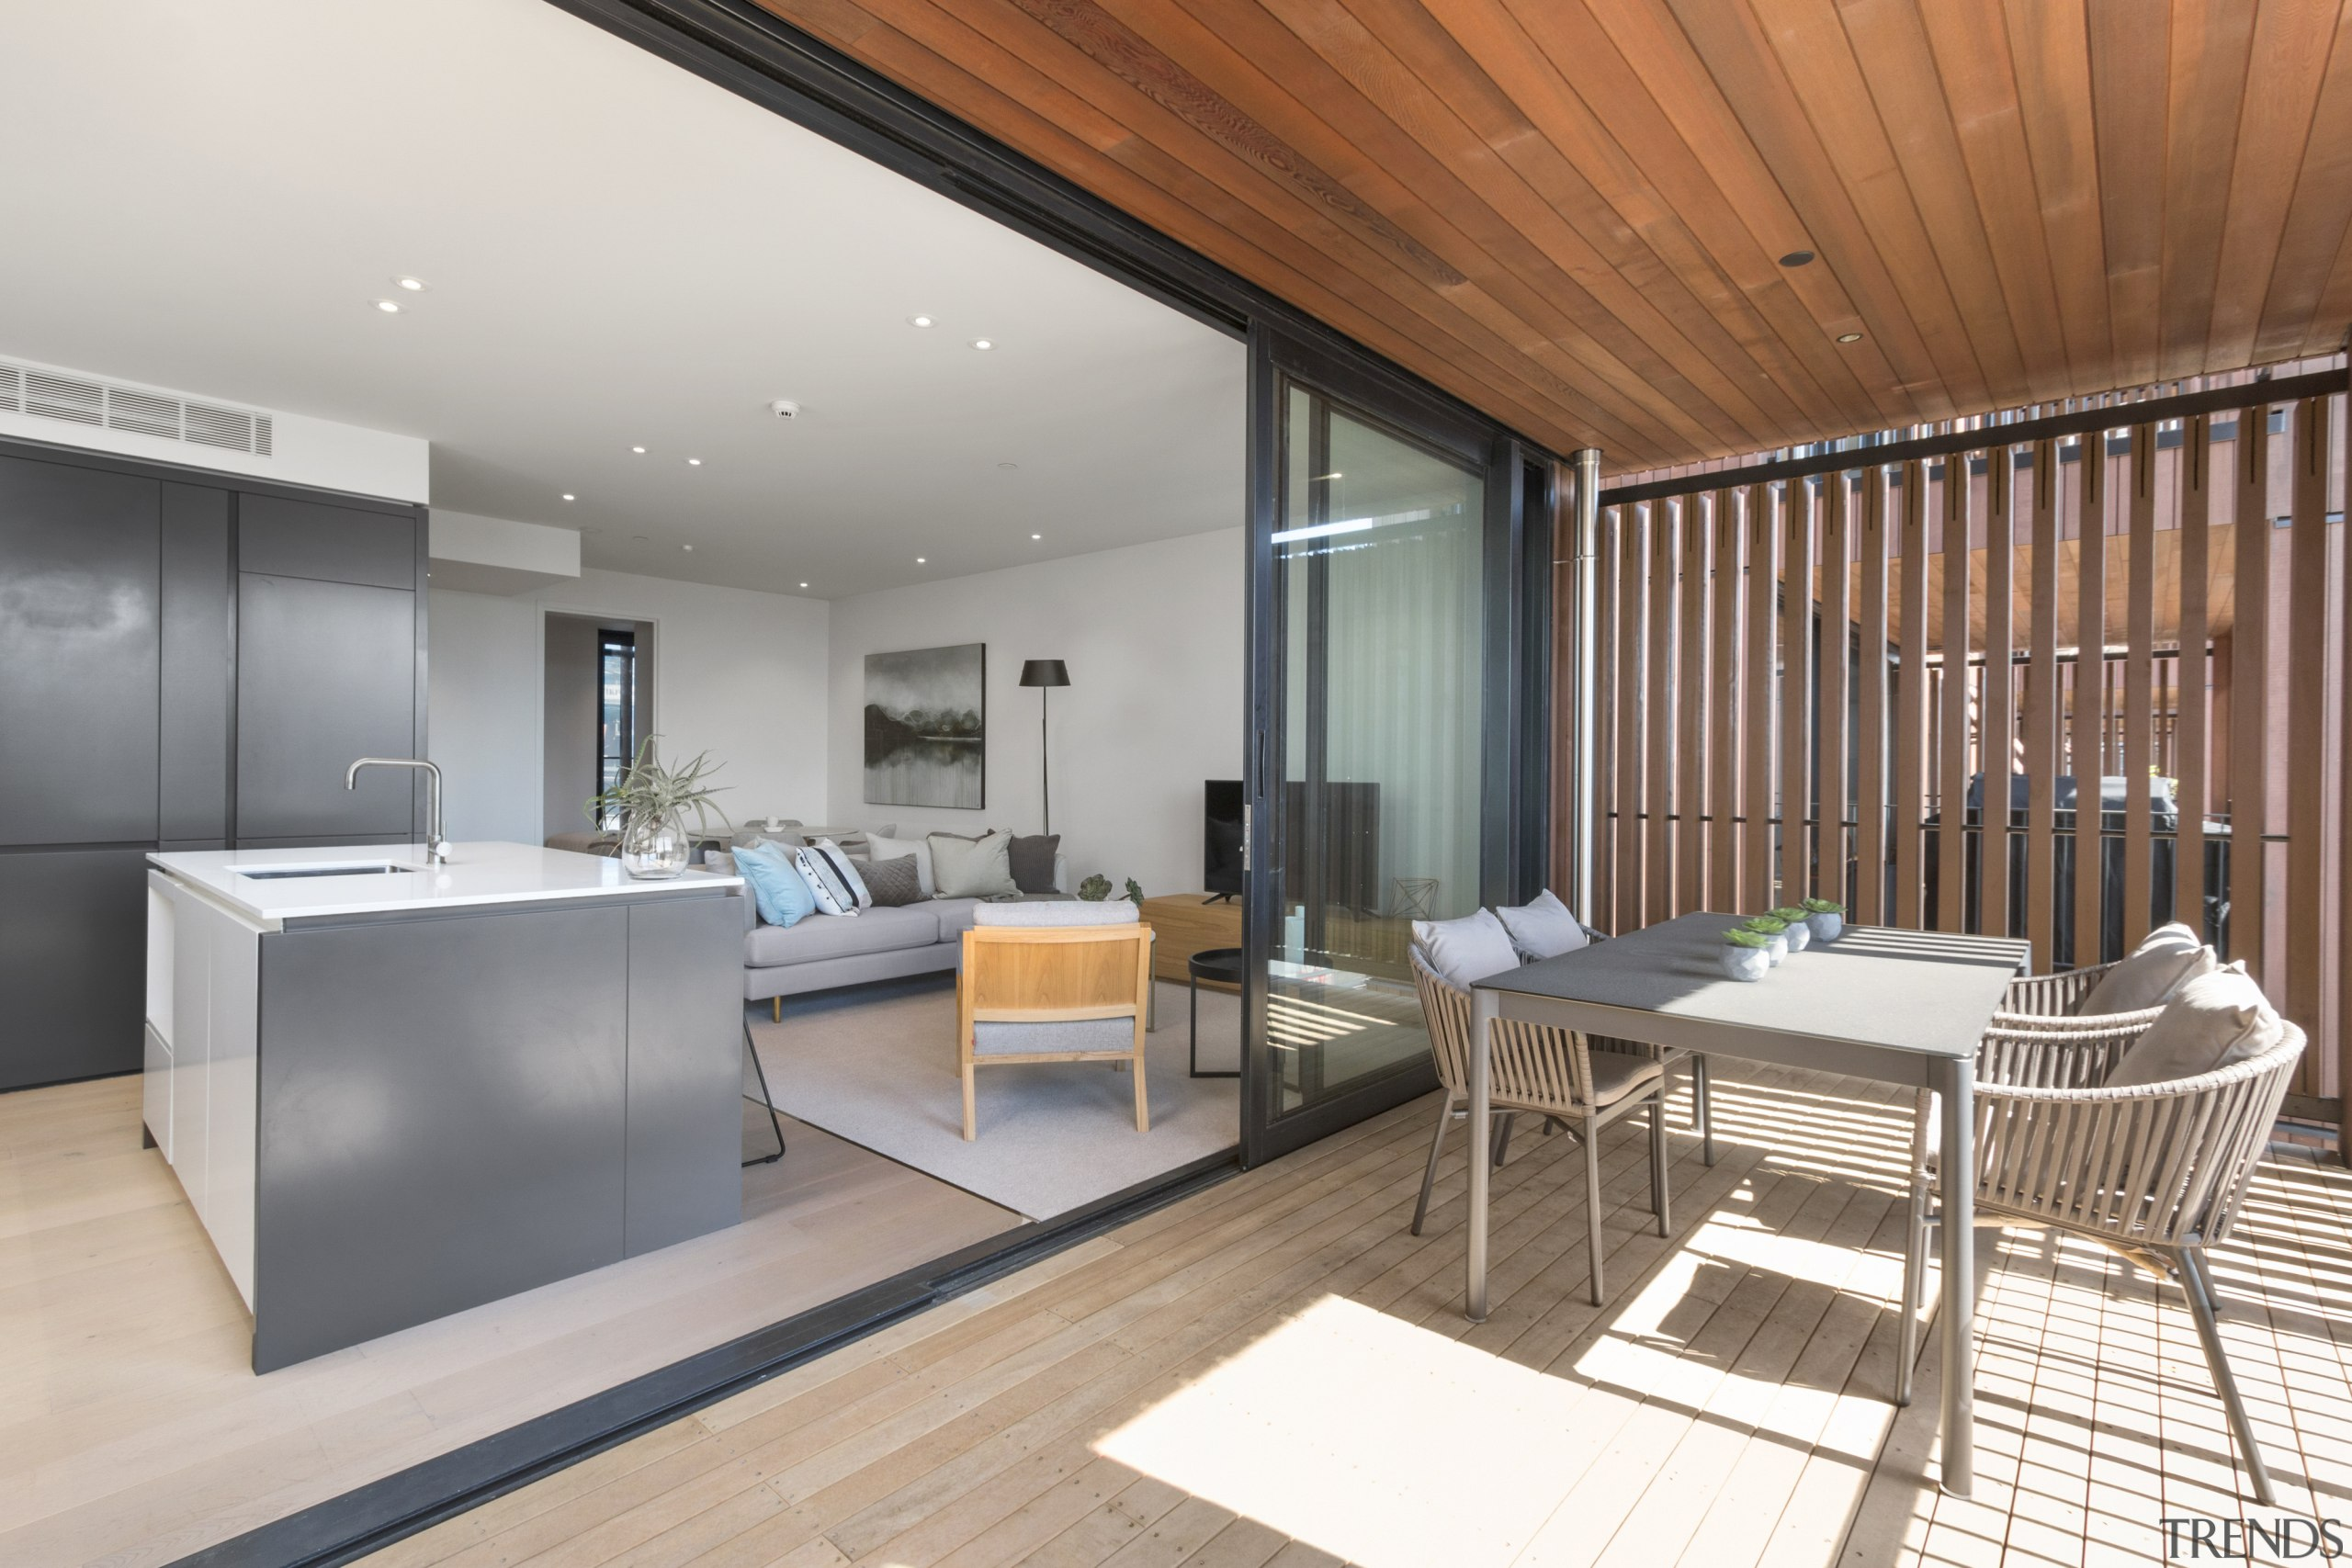 :One of the screened decks in the Pavilion apartment, architecture, building, ceiling, daylighting, design, floor, flooring, furniture, hardwood, home, house, interior design, living room, loft, office, property, real estate, roof, room, table, wall, gray